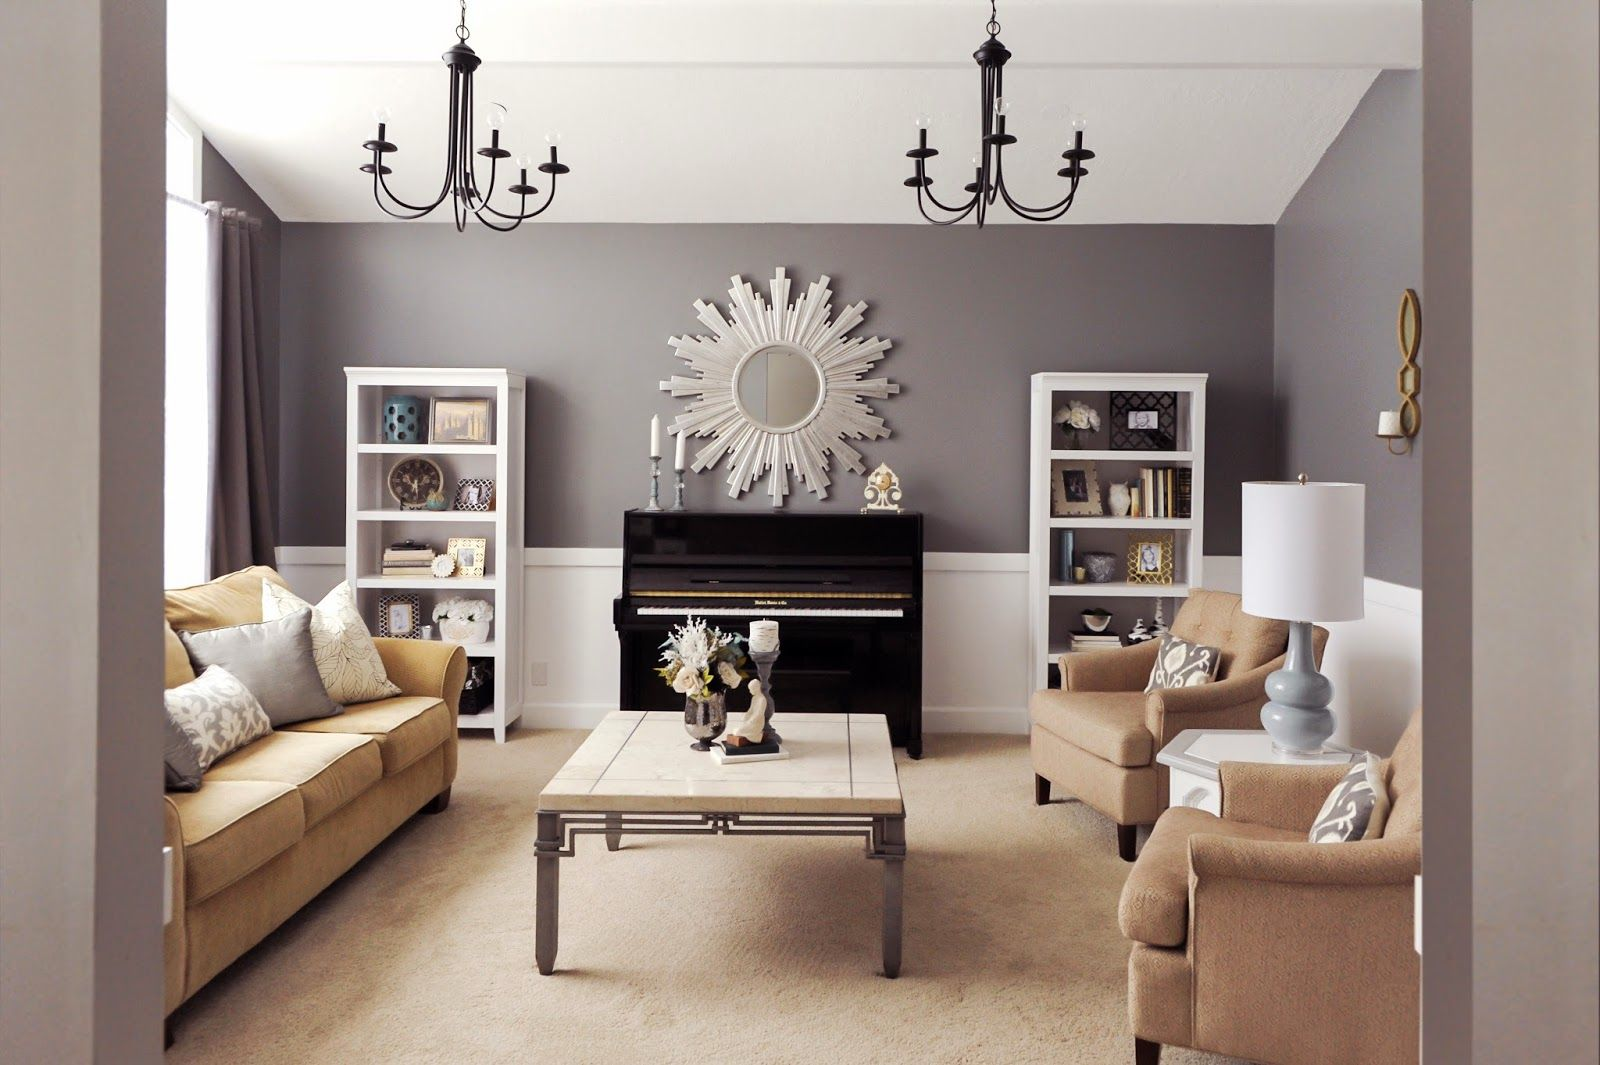 Studio 7 Interior Design: Client Reveal:Transitional Chic Formal Living Room .